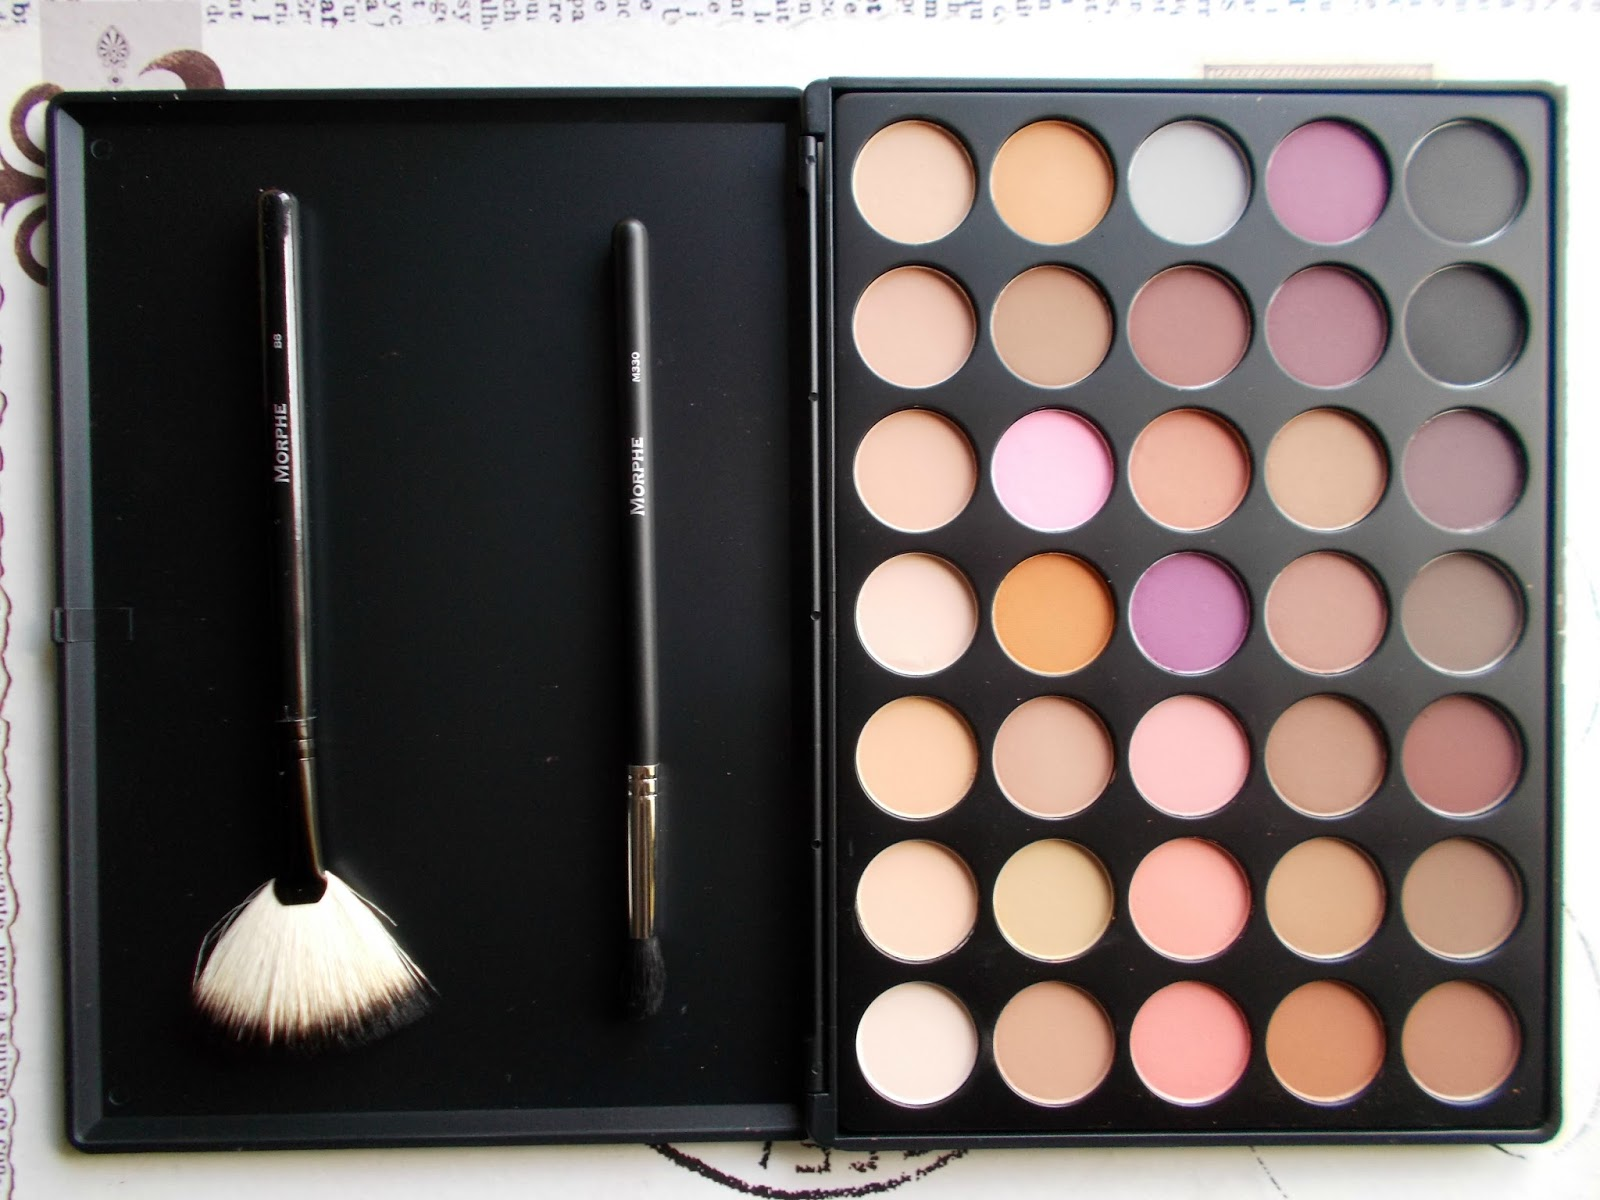 Morphe Brushes Beauty Bay review 35N colour matte palette